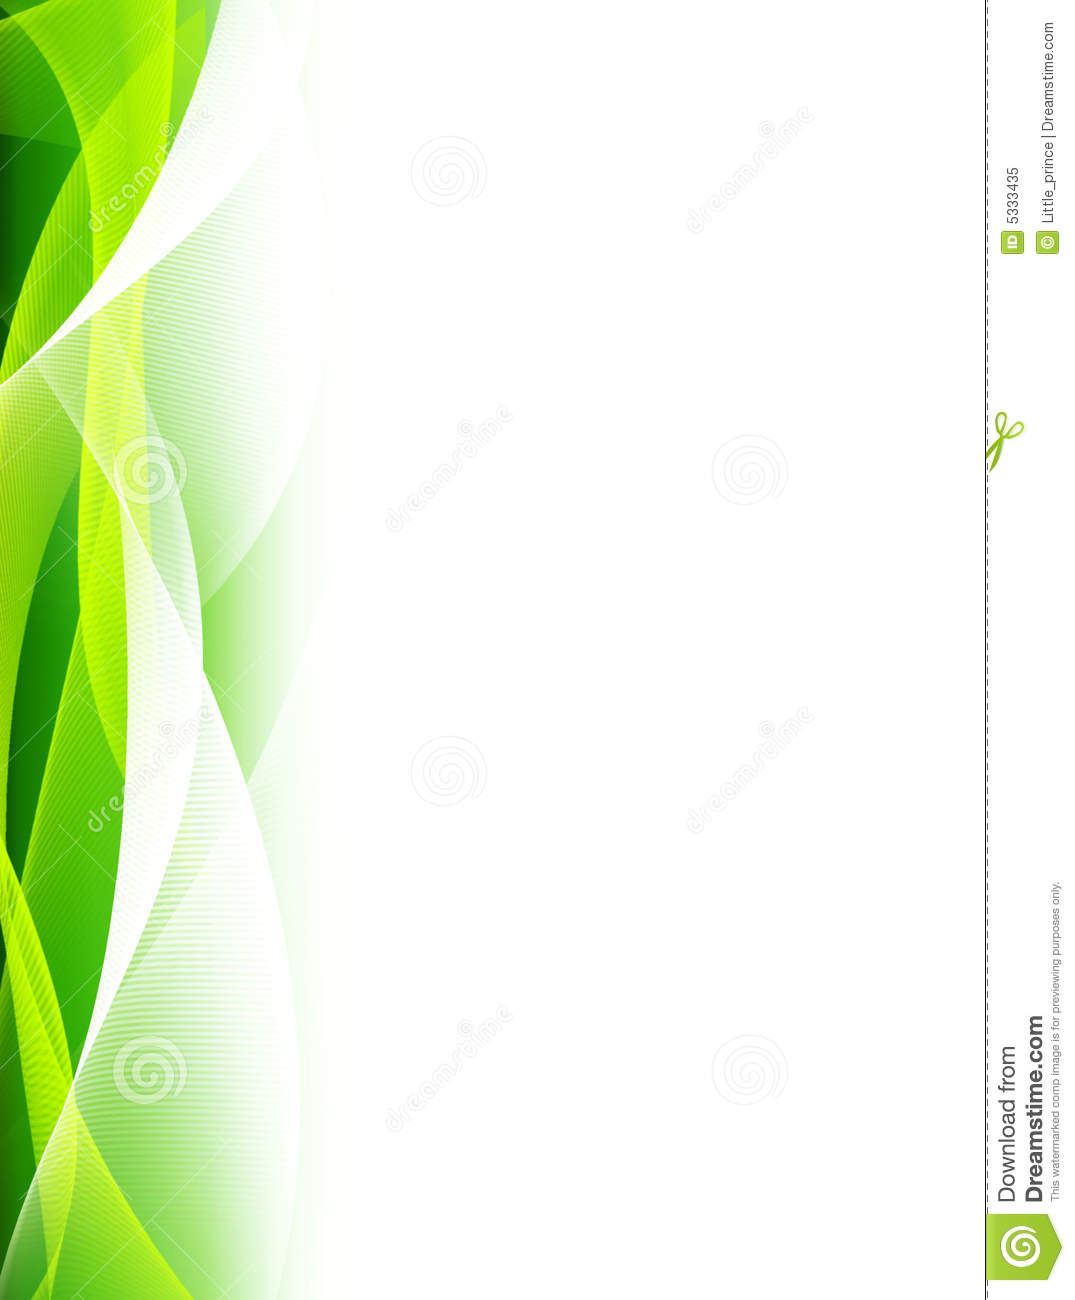 Fond Abstrait Vert Illustration Stock. Illustration Du